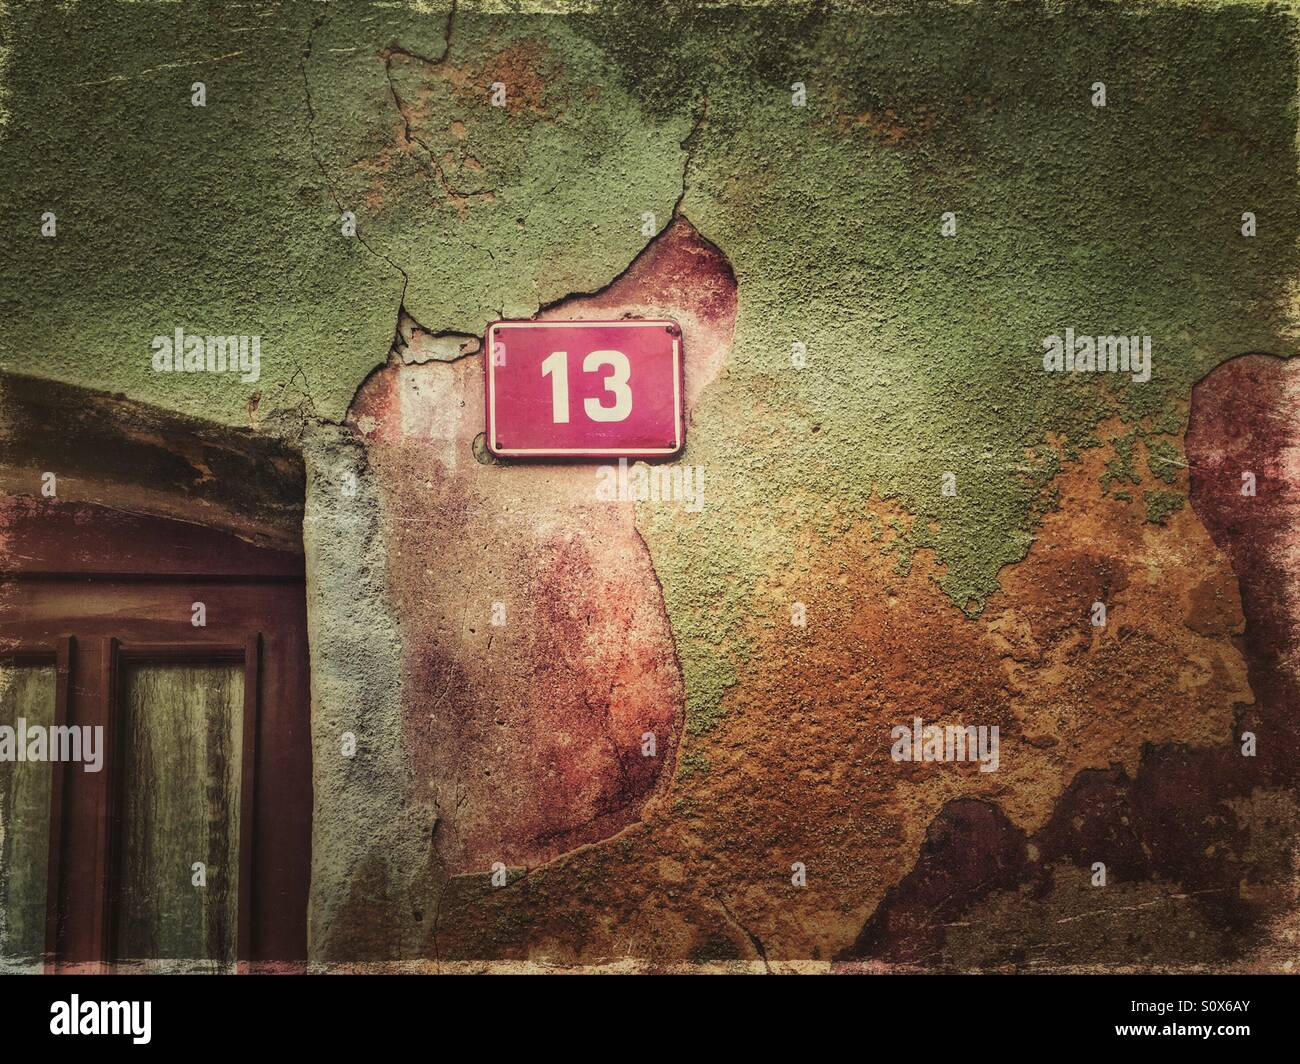 House number 13 on a peeling colorful facade - Stock Image